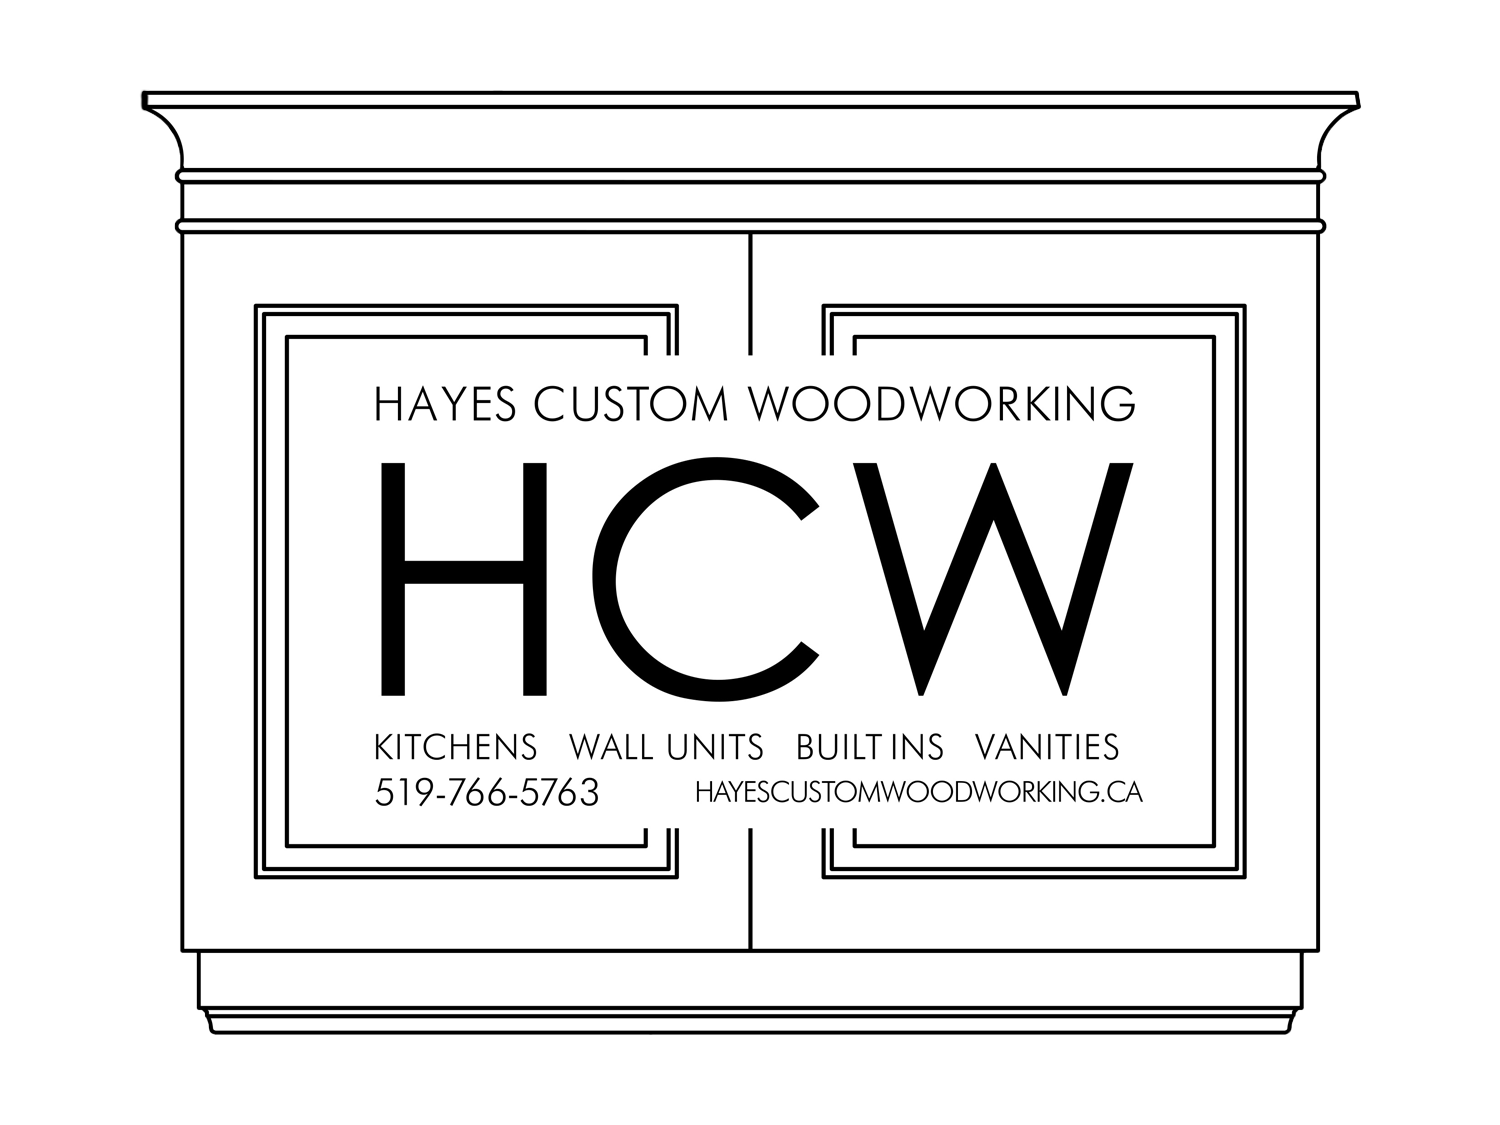 Hayes Custom Woodworking